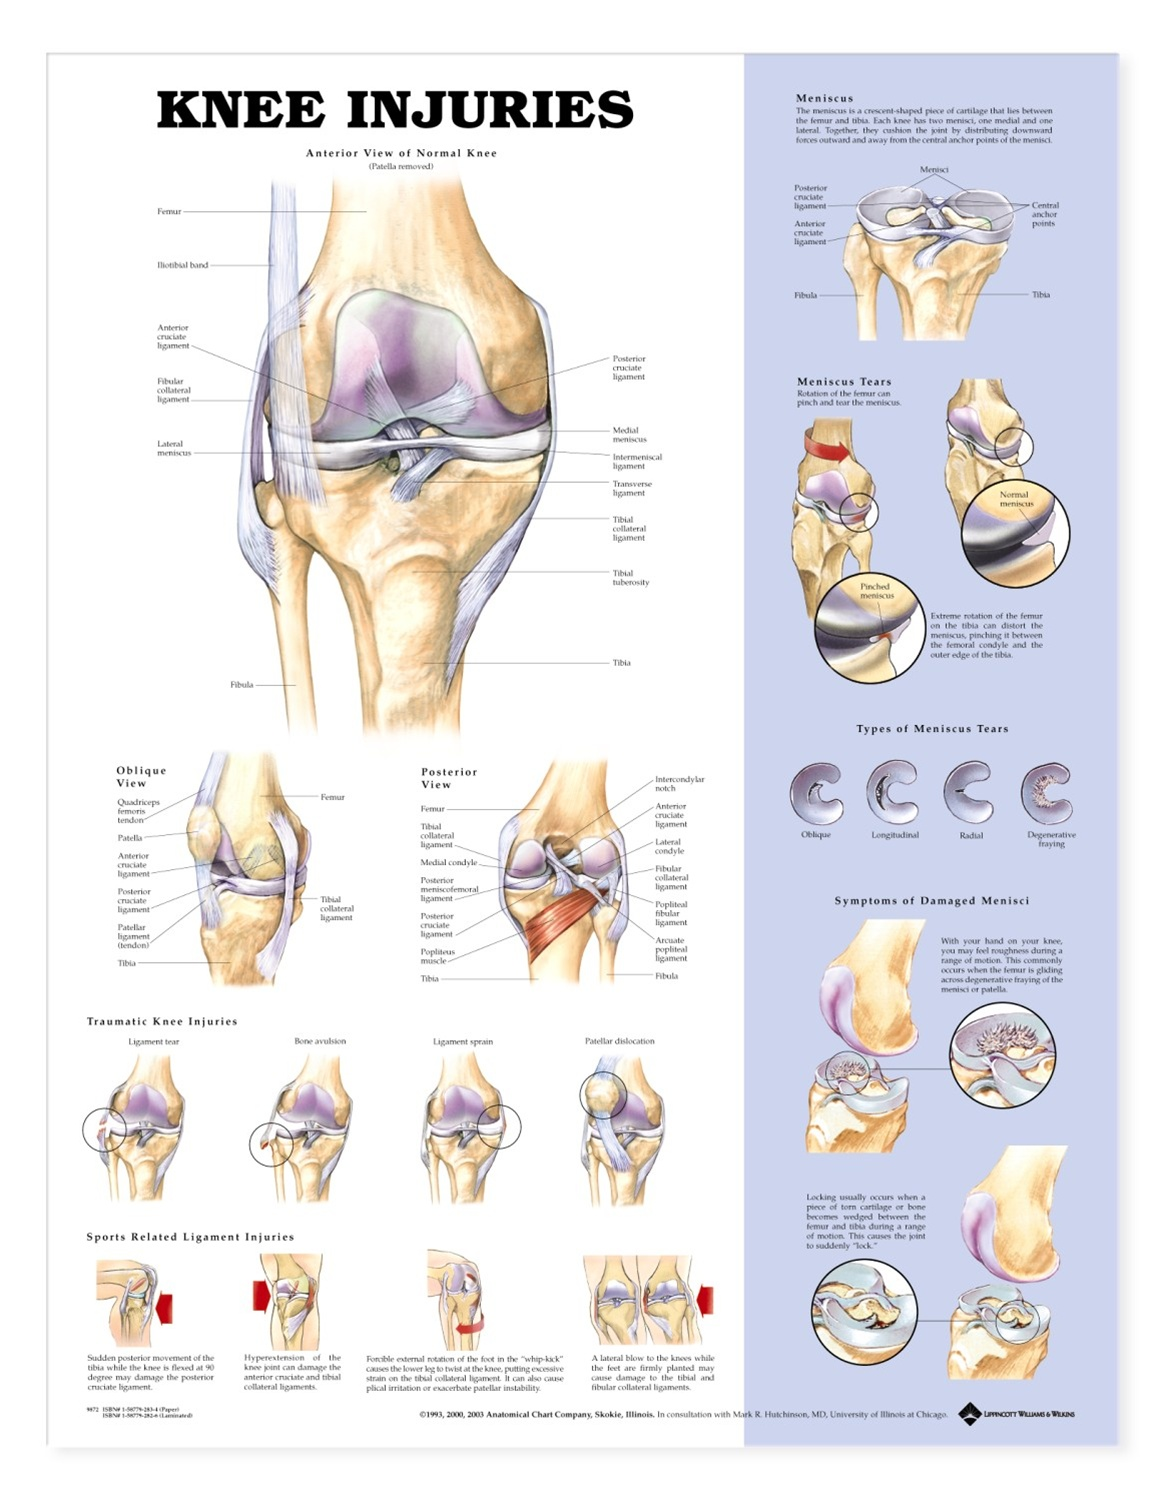 Knee Injuries Anatomical Chart - Anatomy Models and Anatomical Charts